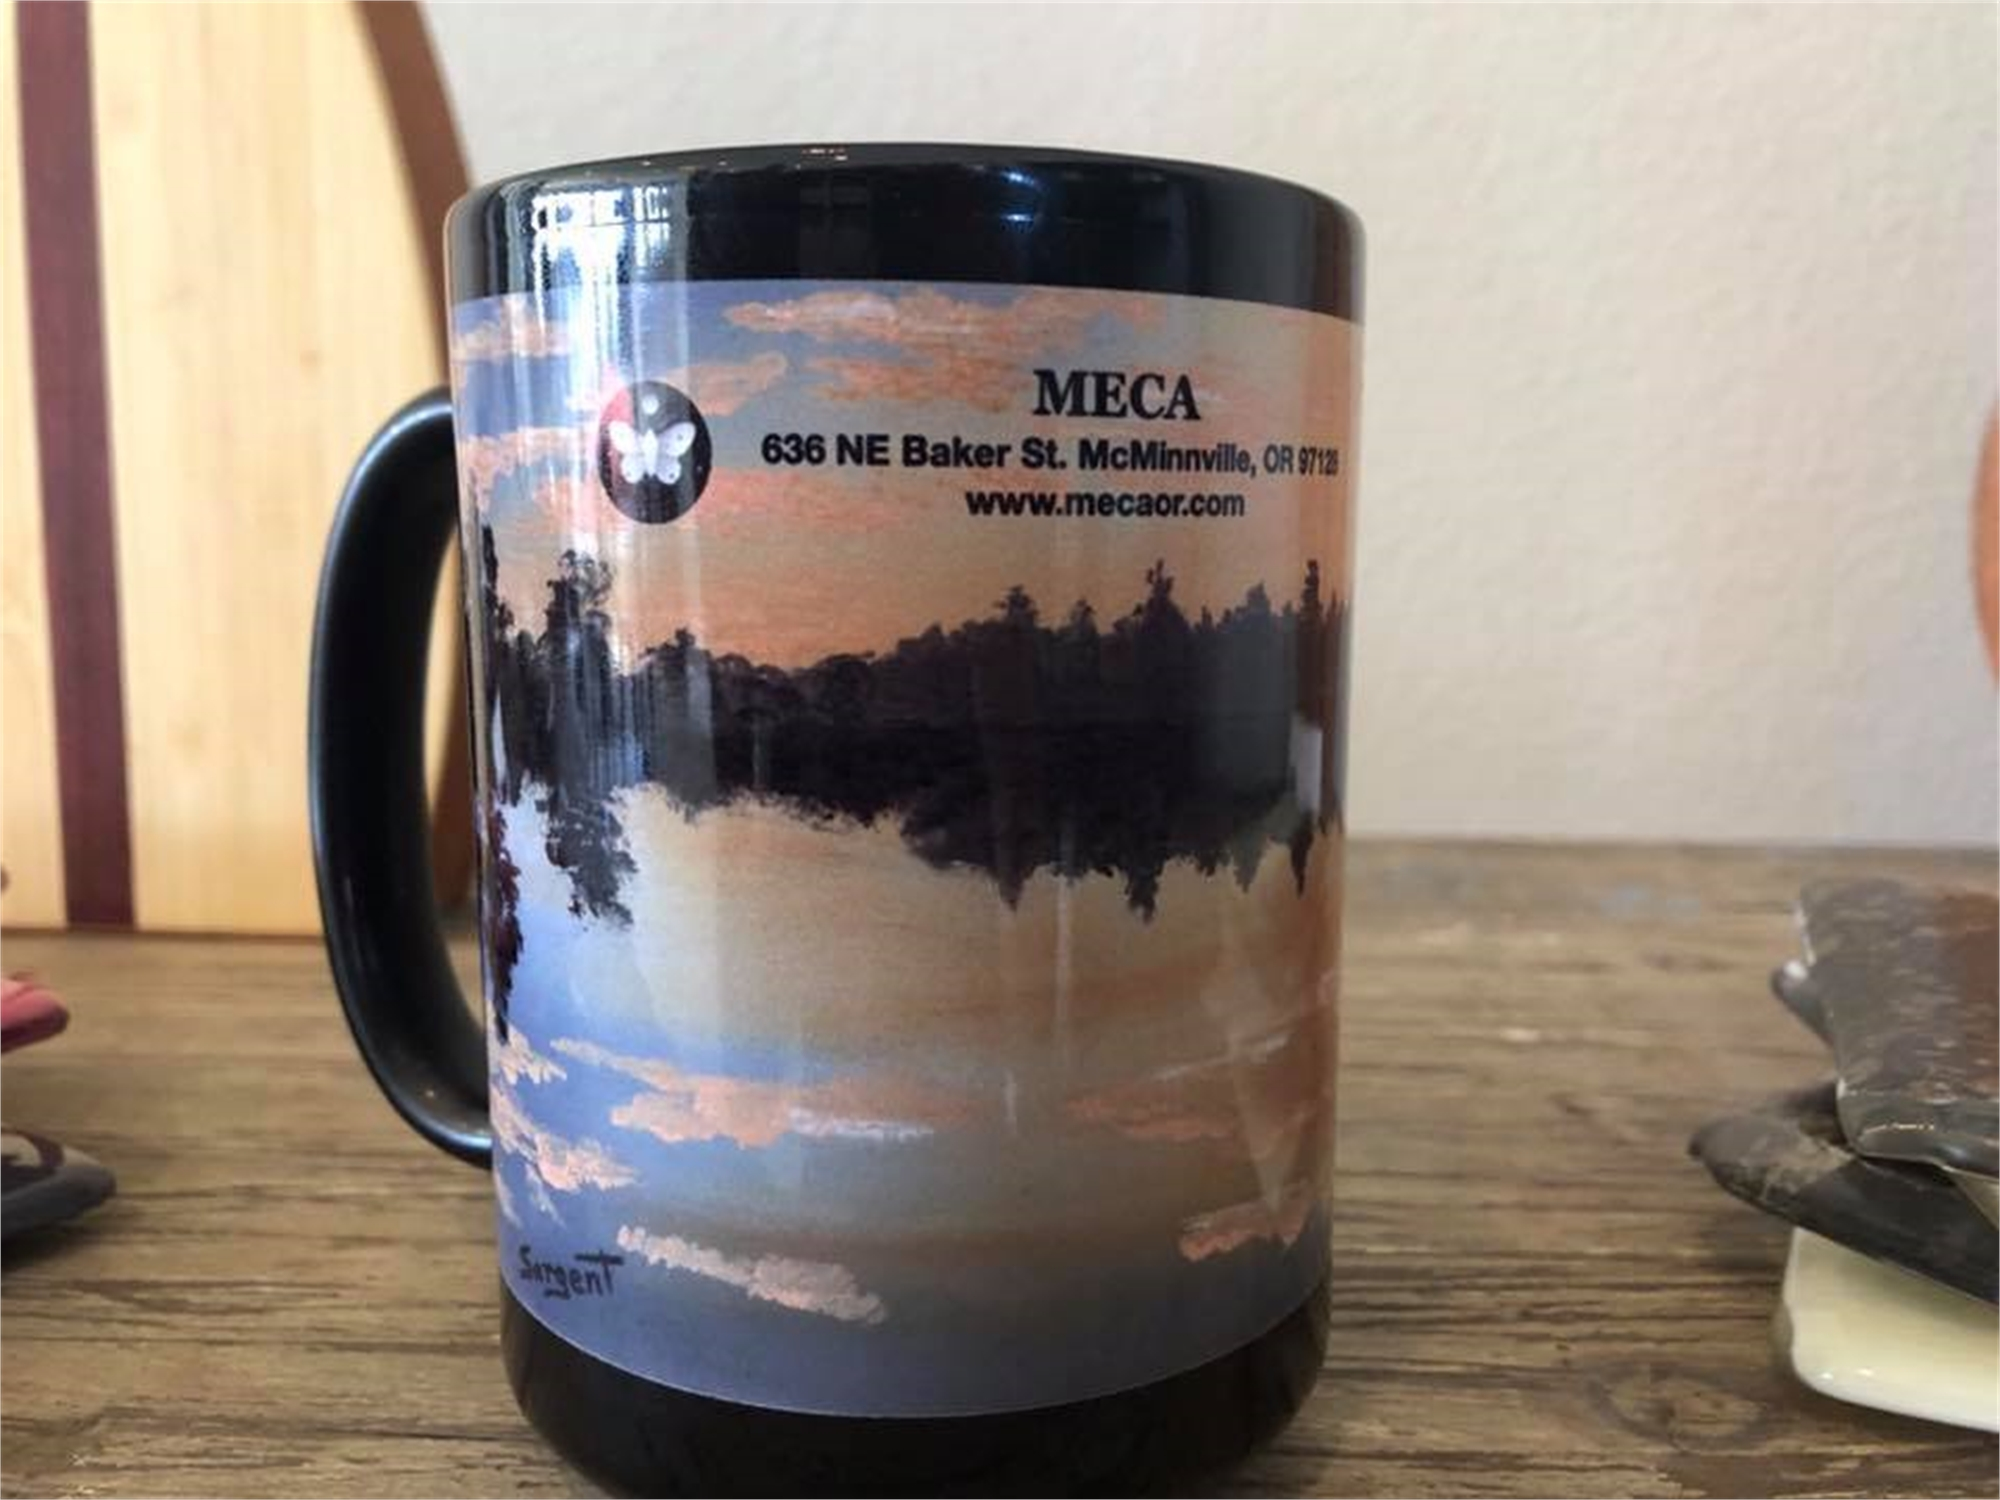 MECA Mug by Phil Sargent (Canby, OR)